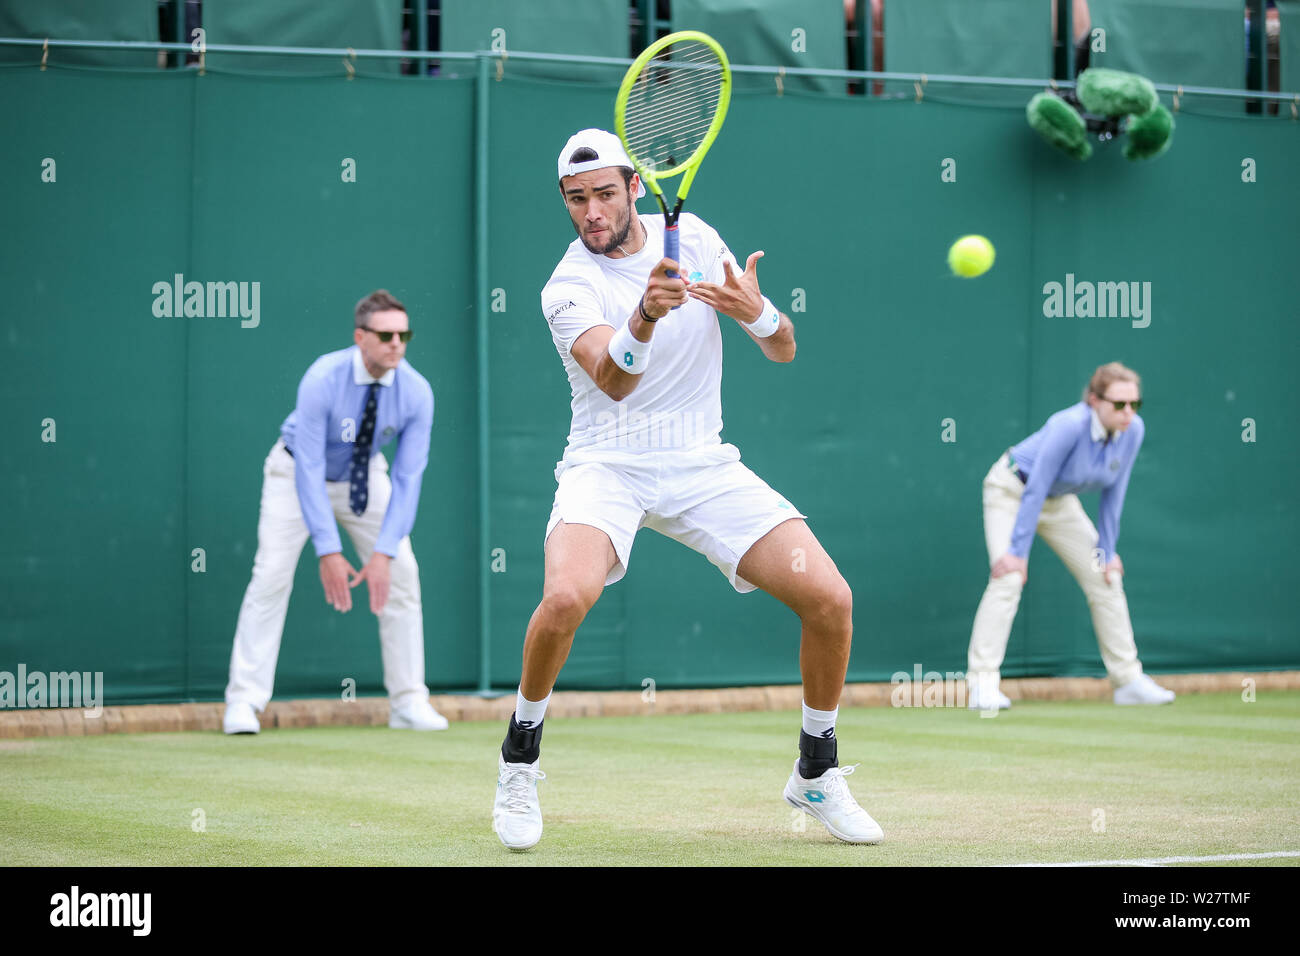 Wimbledon, London, UK. 6th July, 2019. Matteo Berrettini of Italy during the men's singles third round match of the Wimbledon Lawn Tennis Championships against Diego Schwartzman of Argentina at the All England Lawn Tennis and Croquet Club in London, England on July 6, 2019. Credit: AFLO/Alamy Live News - Stock Image